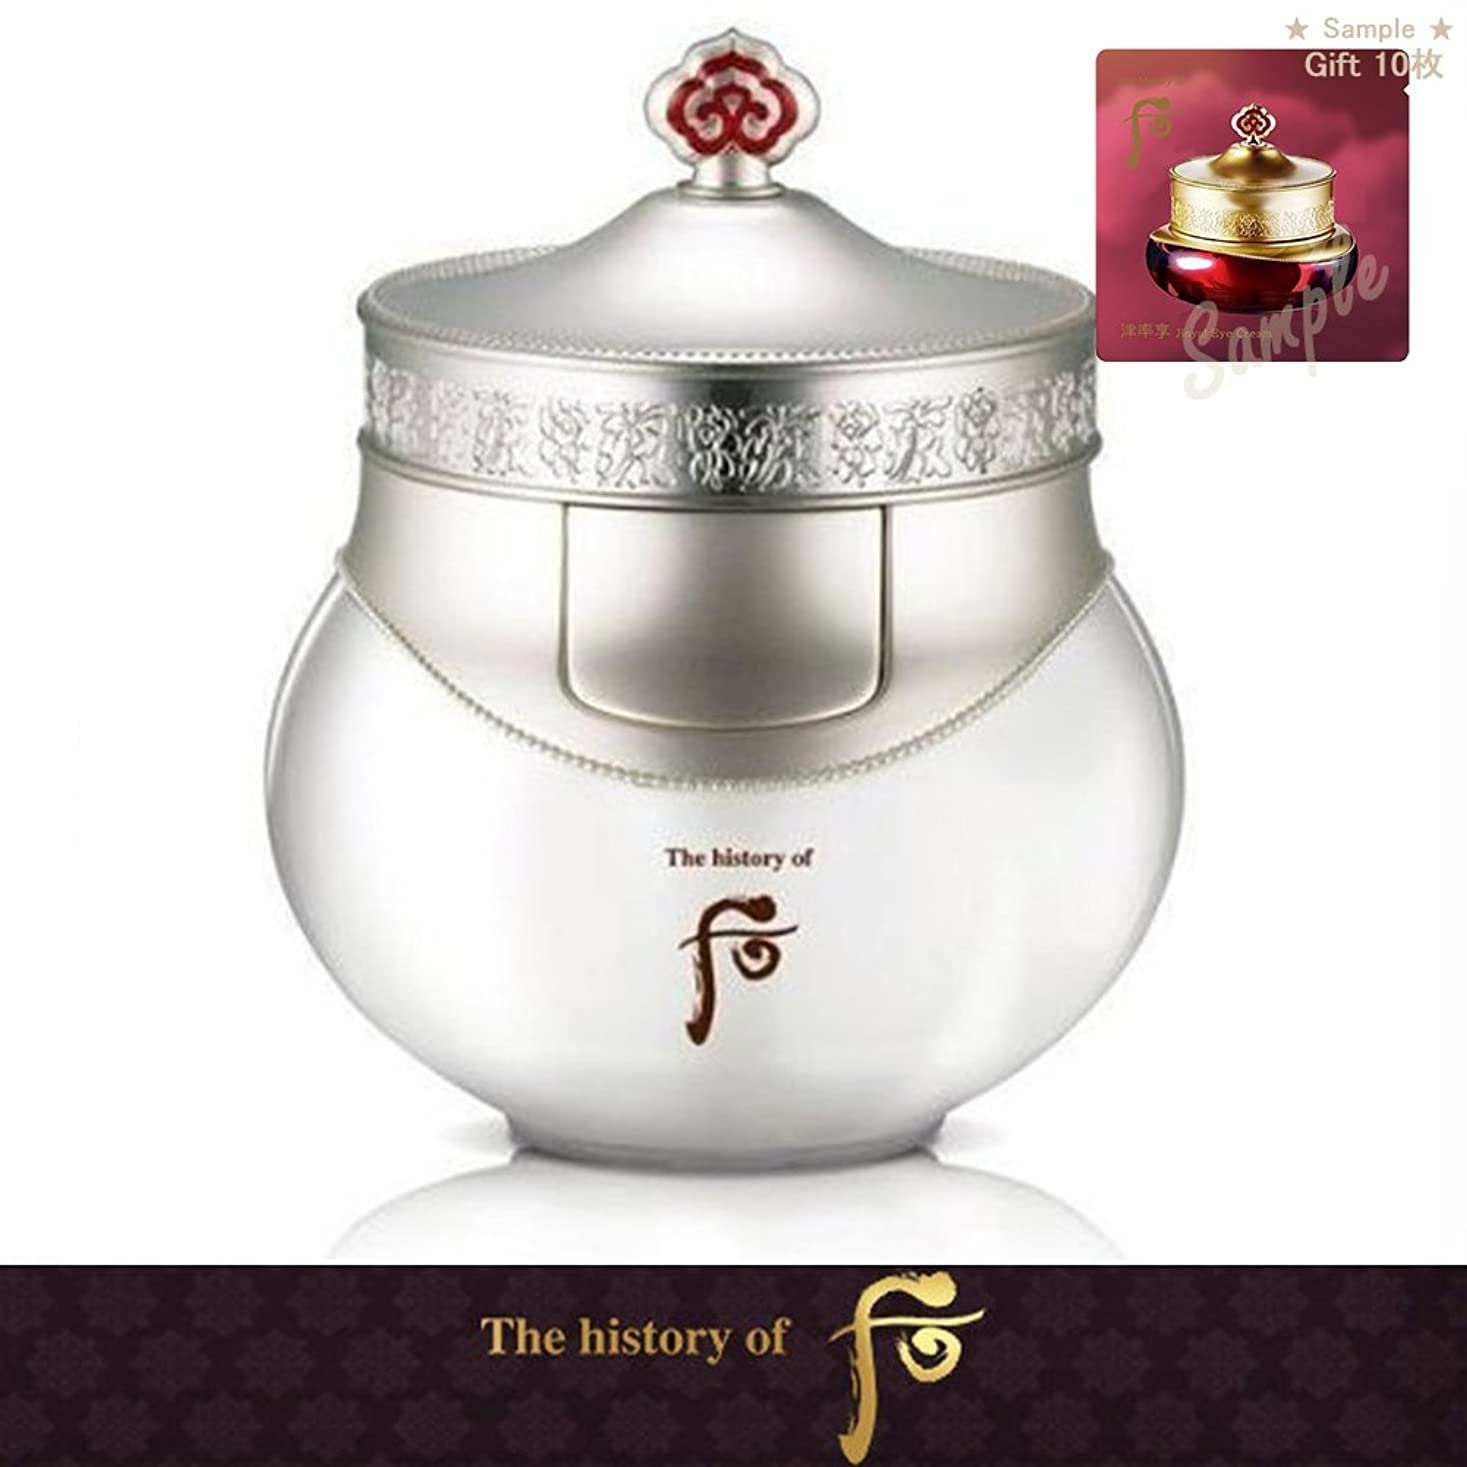 確かな植物の雹【フー/ The history of whoo] Whoo 后(フー) The history of whoo Gongjinhyang Seol Whitening & Mositure Cream ゴンジンヒャン設定美 白水分と- 60ml+ Sample Gift(海外直送品)